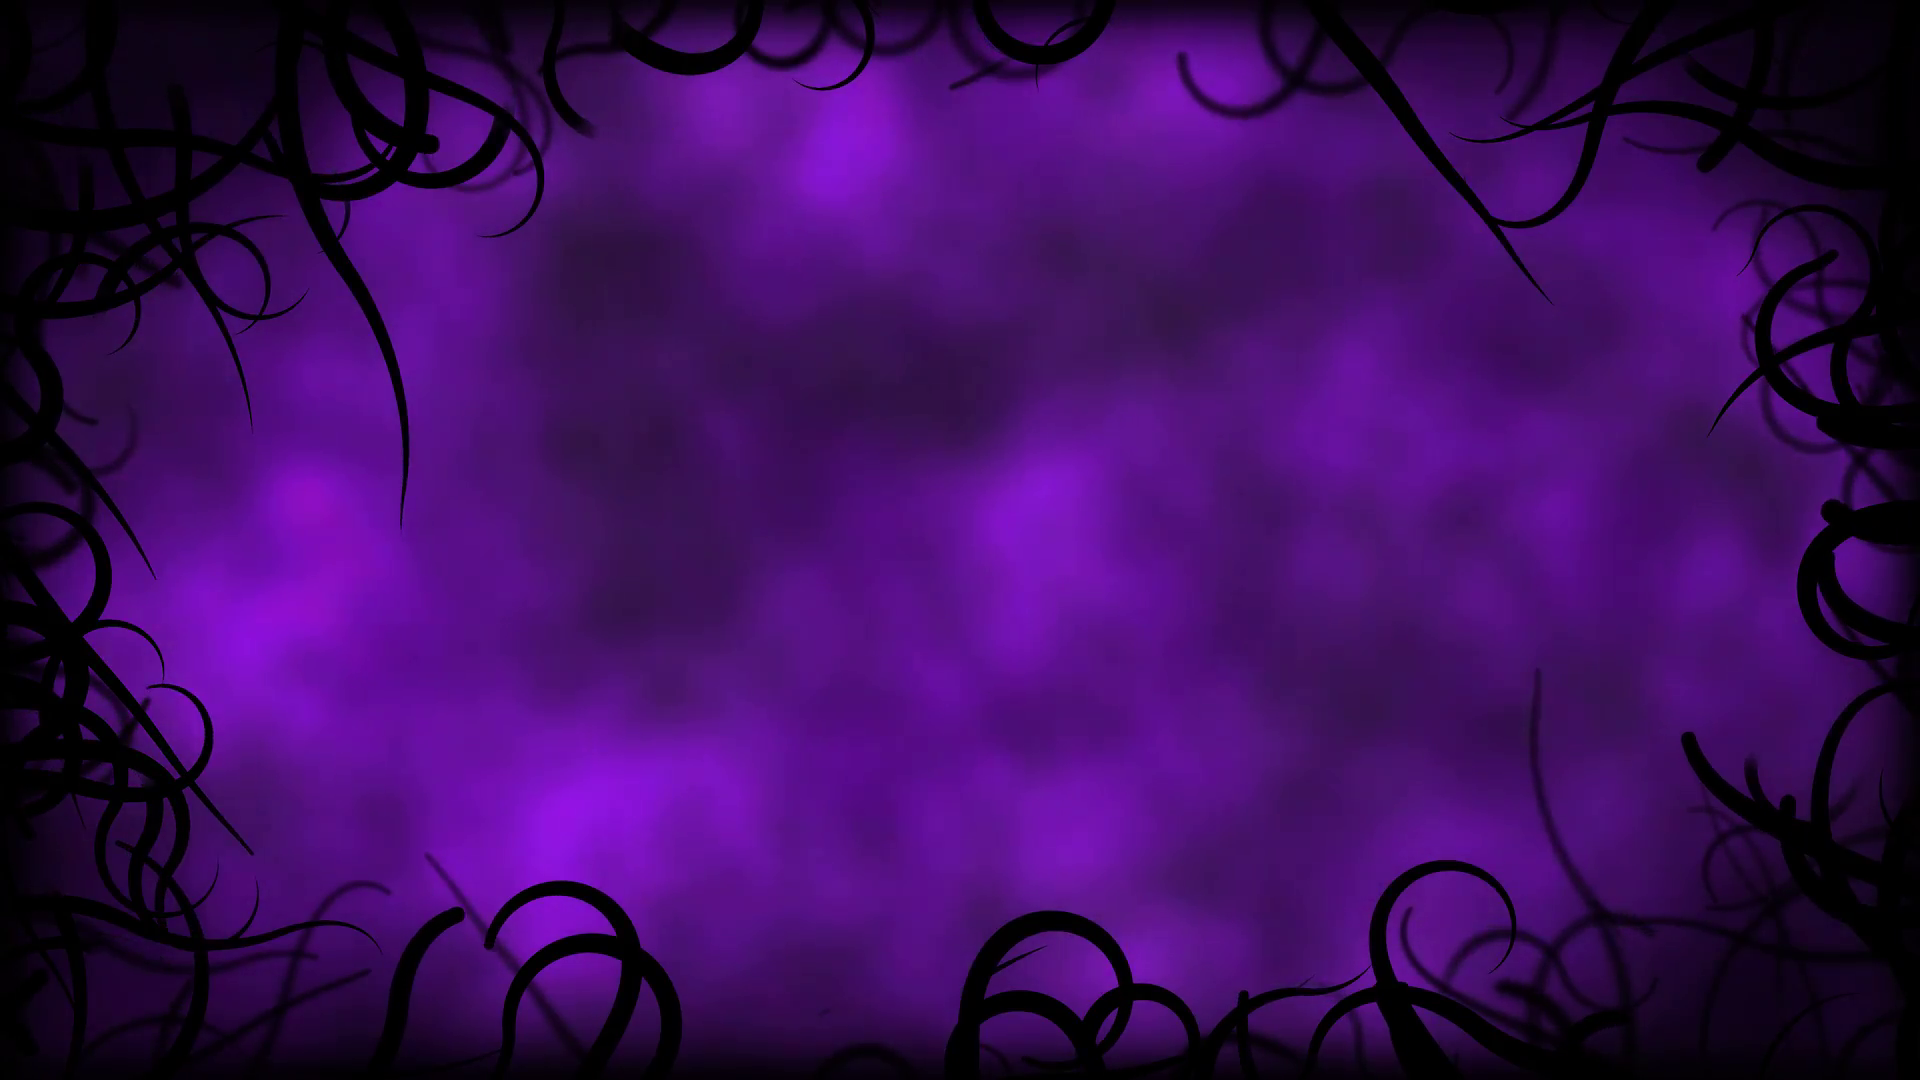 Purple And Black Backgrounds Png - Purple And Black Backgrounds 1920x1080, #X422U21 | Wallperio.com™